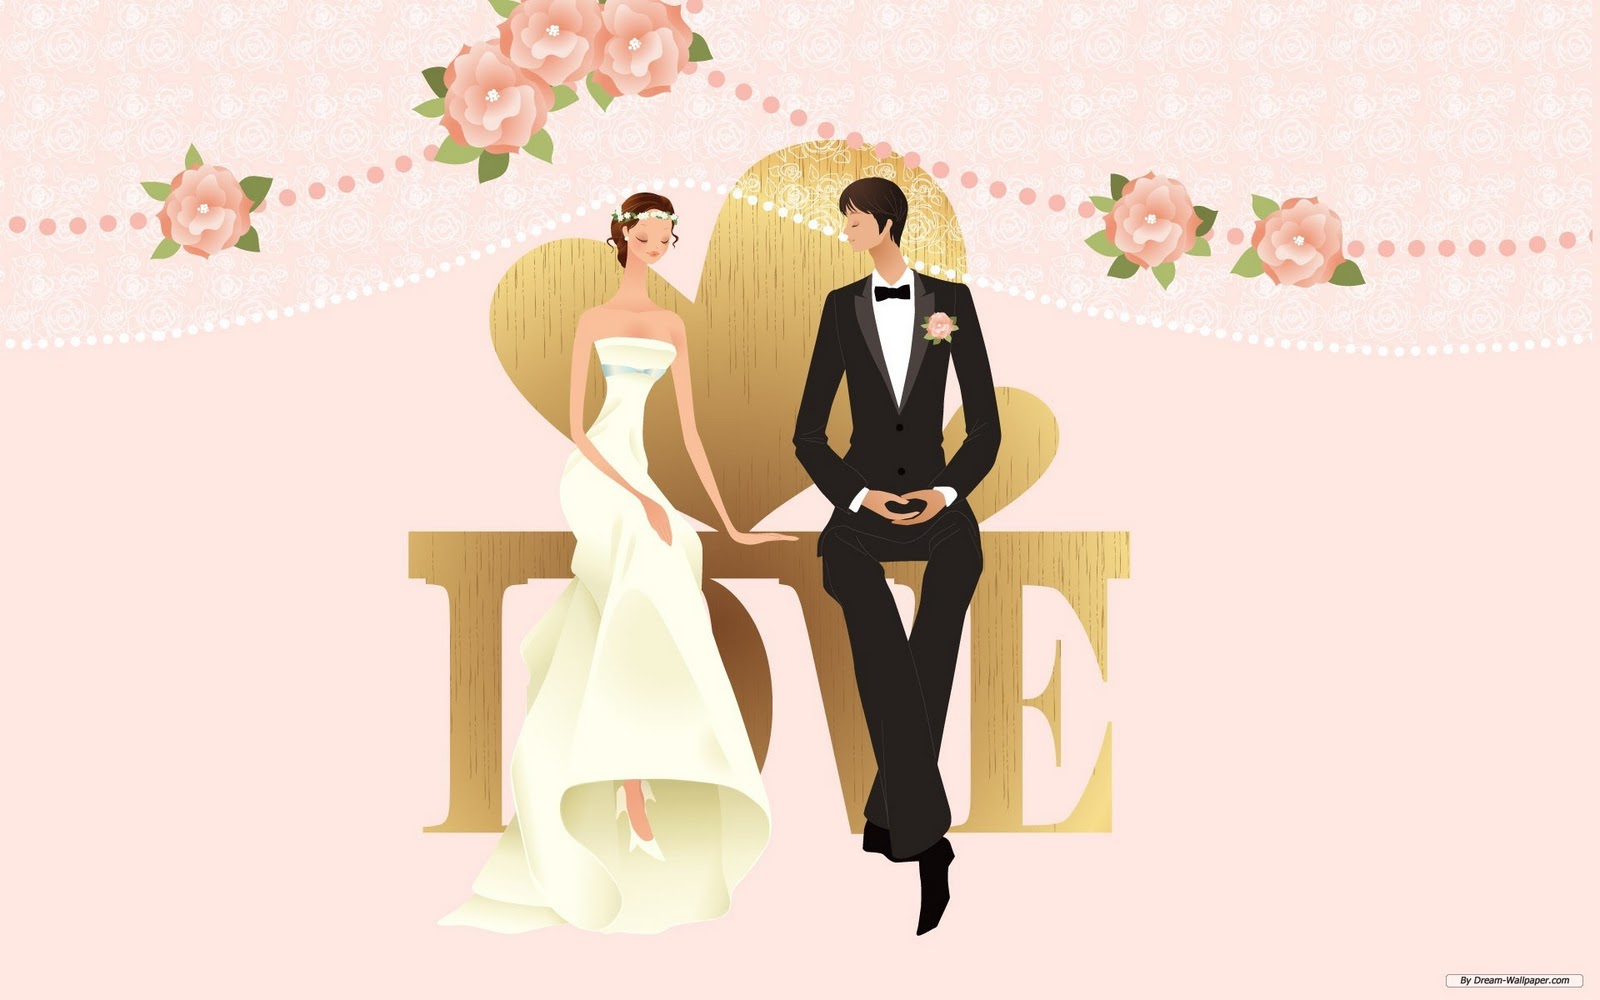 clipart of a wedding - photo #48